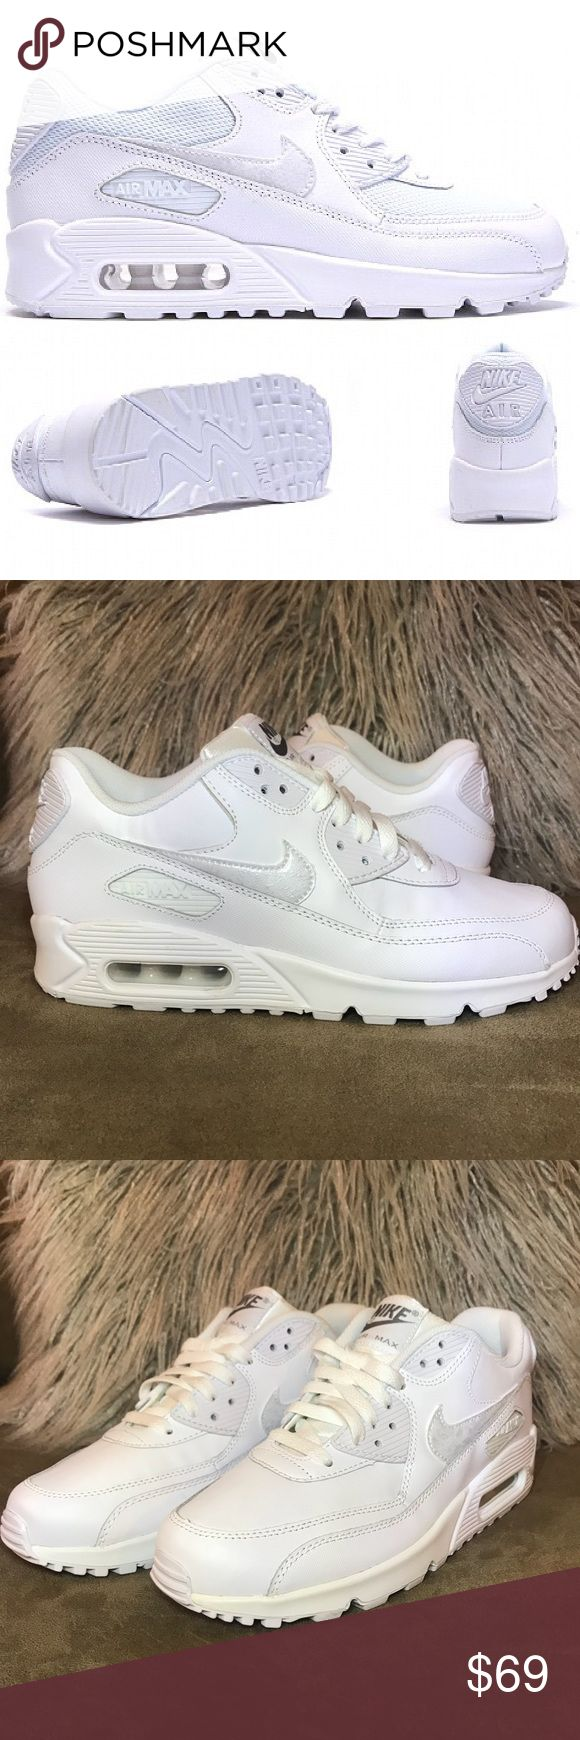 Brand New - Nike Air Max 90 - White Cool Grey 7Y Nike Air Max 90 - White Cool Grey 724821-100 Boys 7Y - Brand New - No Box Nike Shoes Athletic Shoes